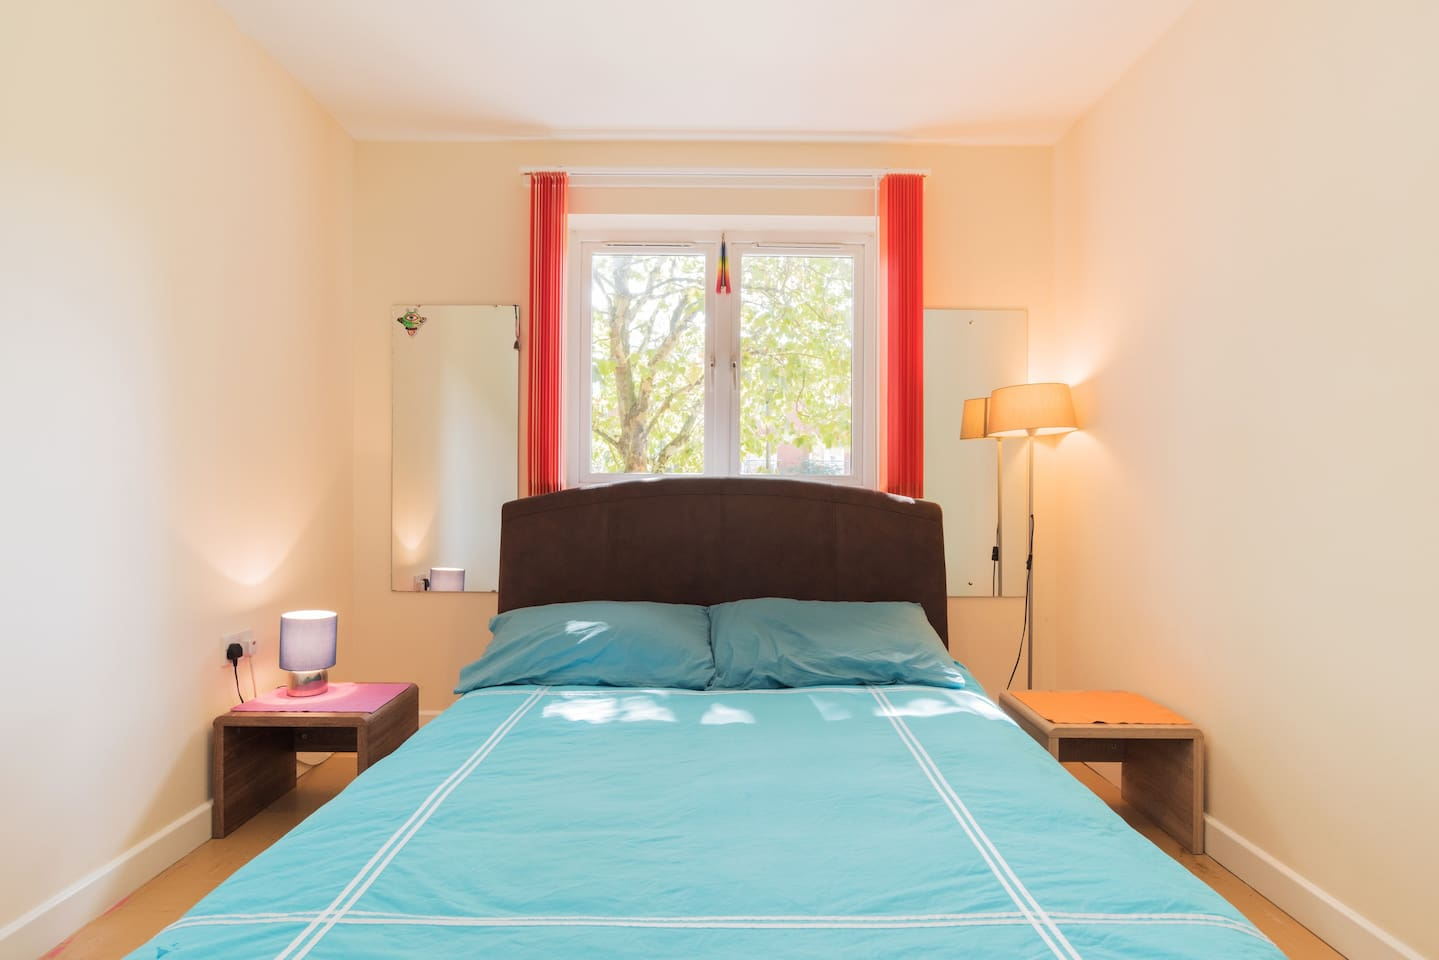 Colourful clean, & bright bedroom with comfortable double bed in pleasant apartment in quiet corner of south London. Supermarket 5 mins walk. Short walk to cafes & bars, and to trains & buses to central London as well as airports, stations & shops.